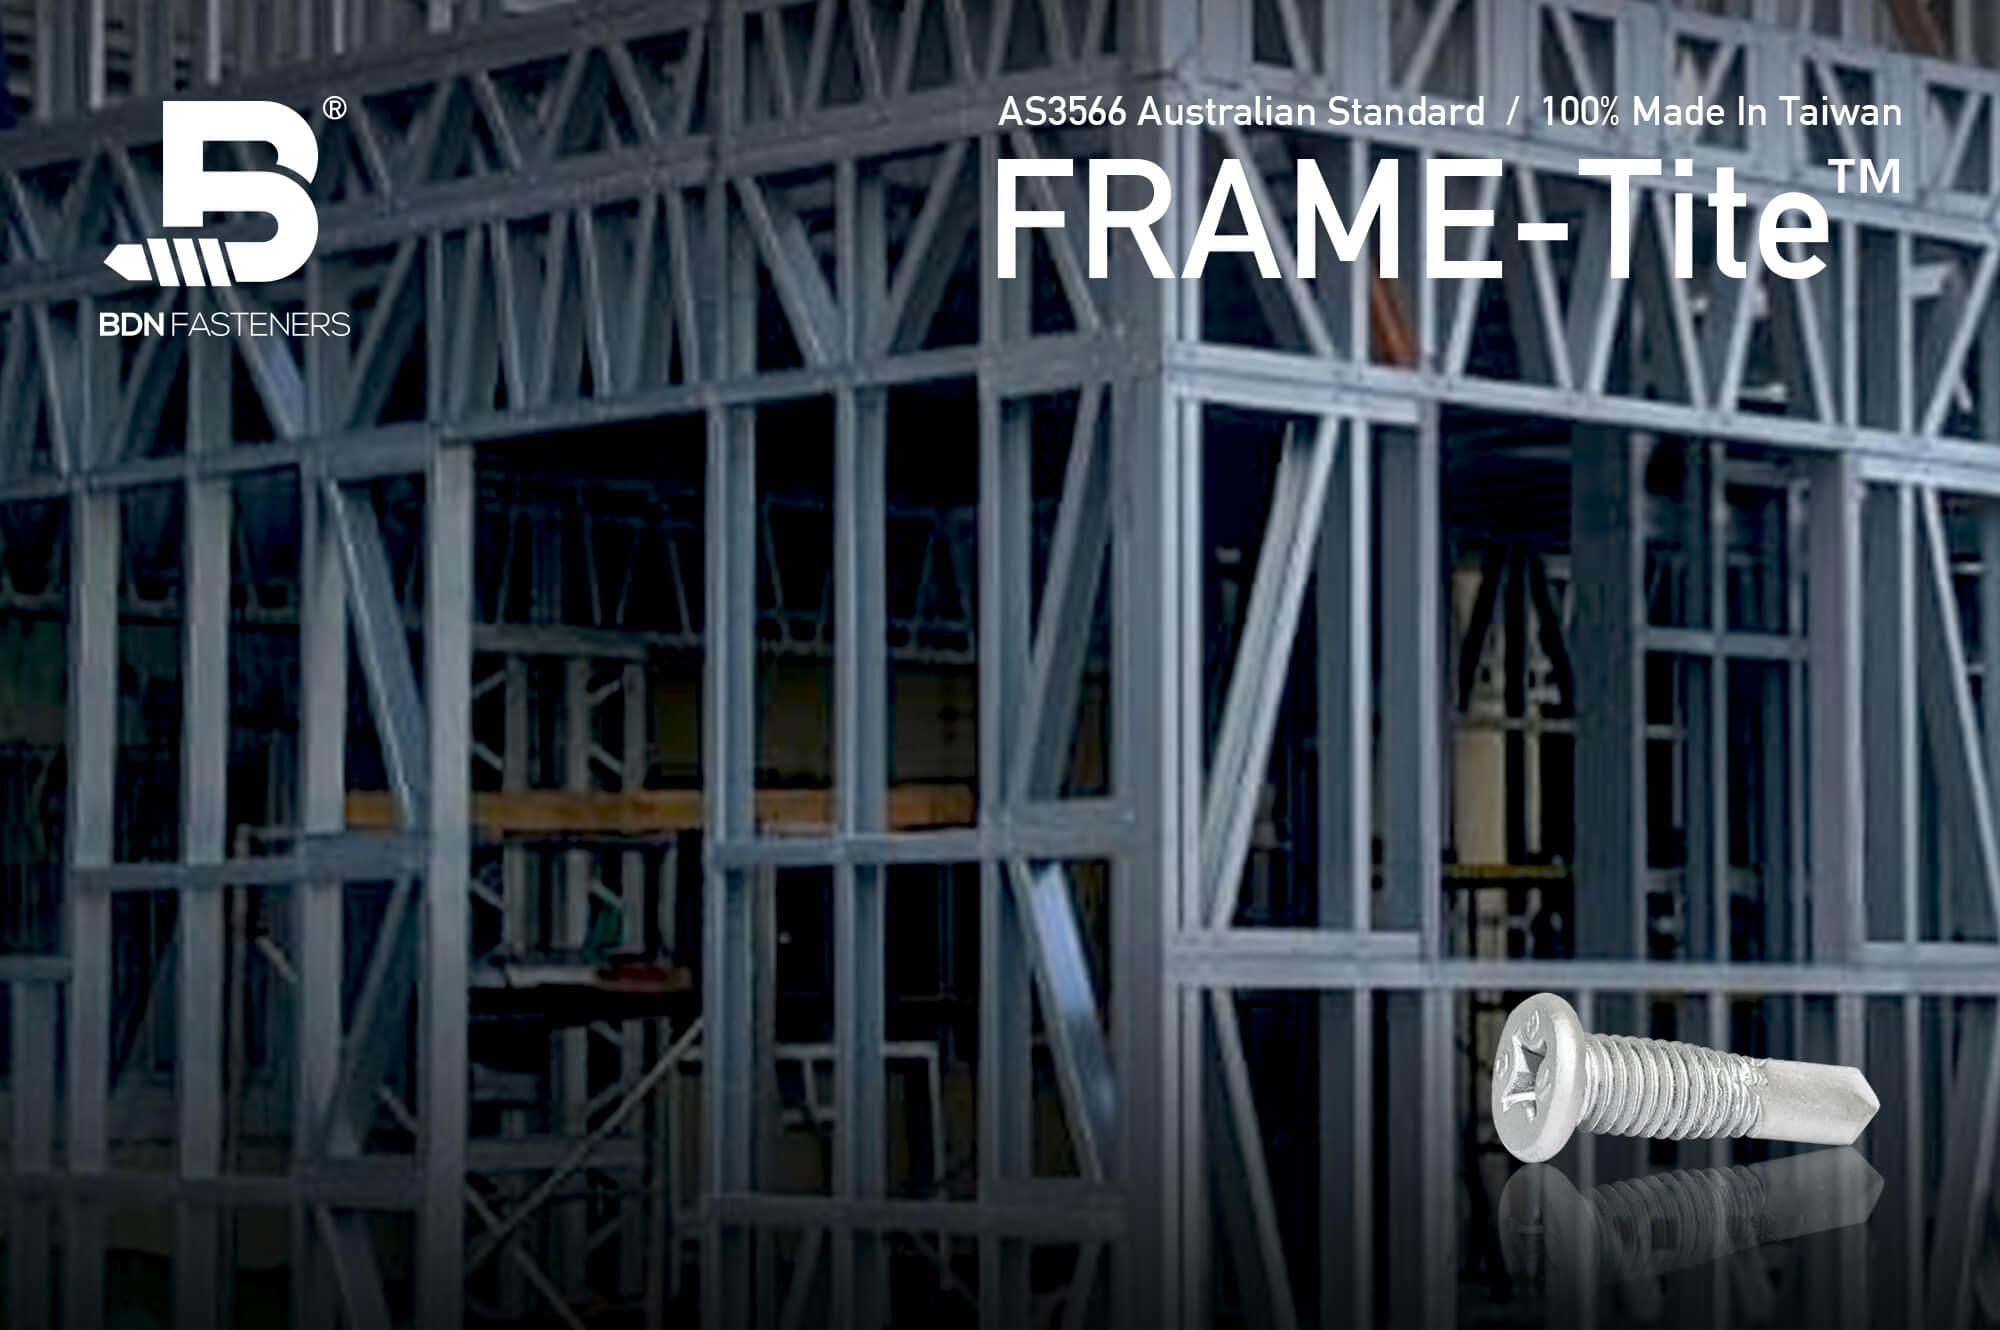 Frame Screw - FRAME-Tite™ Fixing to steel wall frames, BDN FASTENERS®